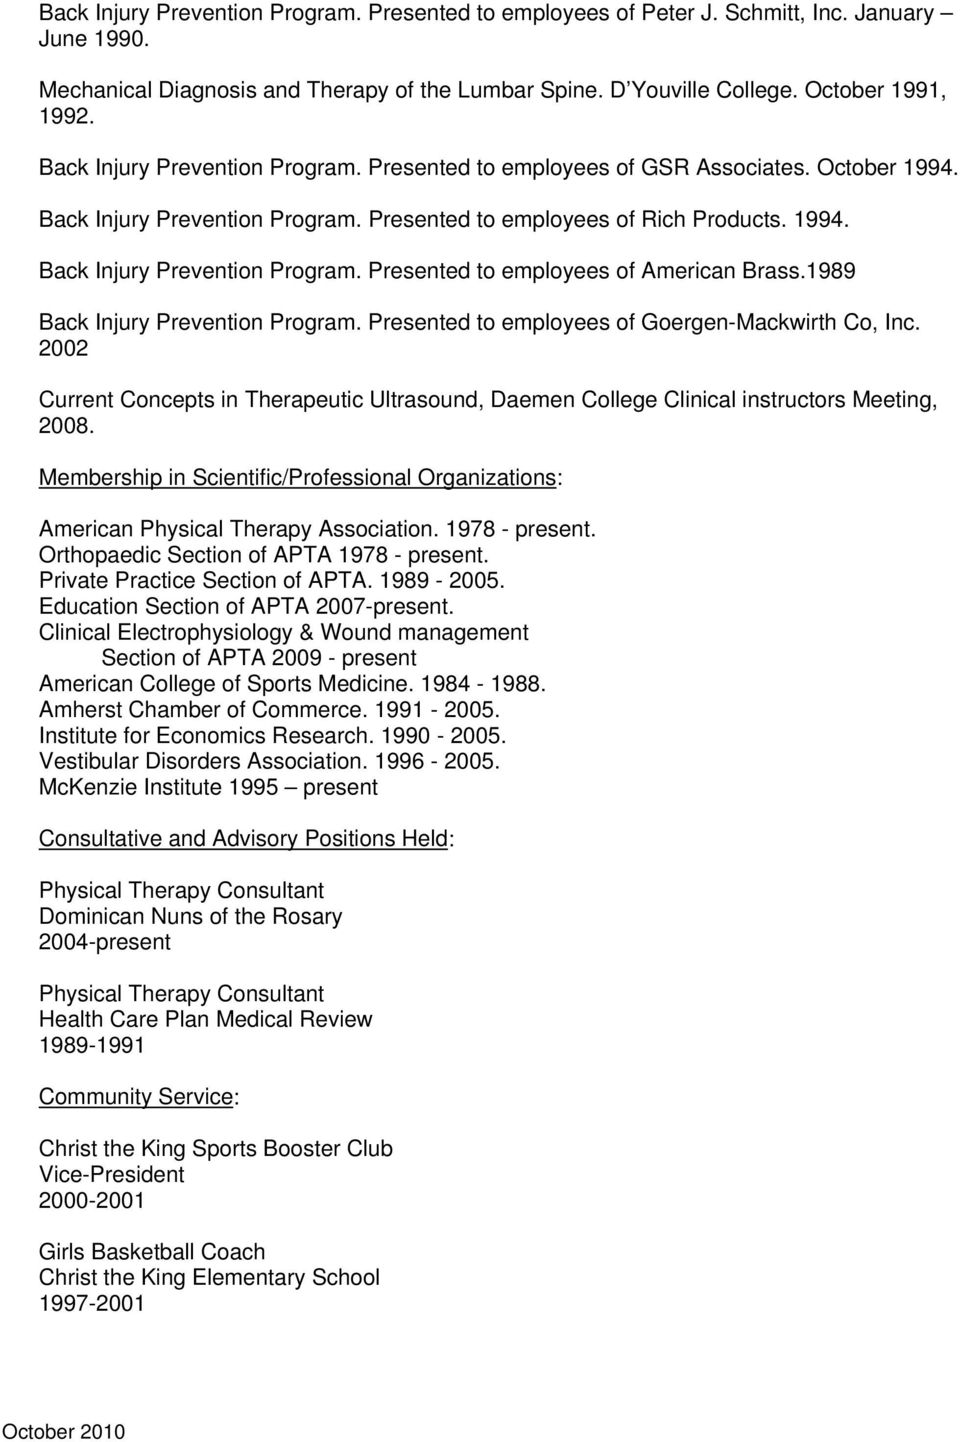 1989 Back Injury Prevention Program. Presented to employees of Goergen-Mackwirth Co, Inc. 2002 Current Concepts in Therapeutic Ultrasound, Clinical instructors Meeting, 2008.